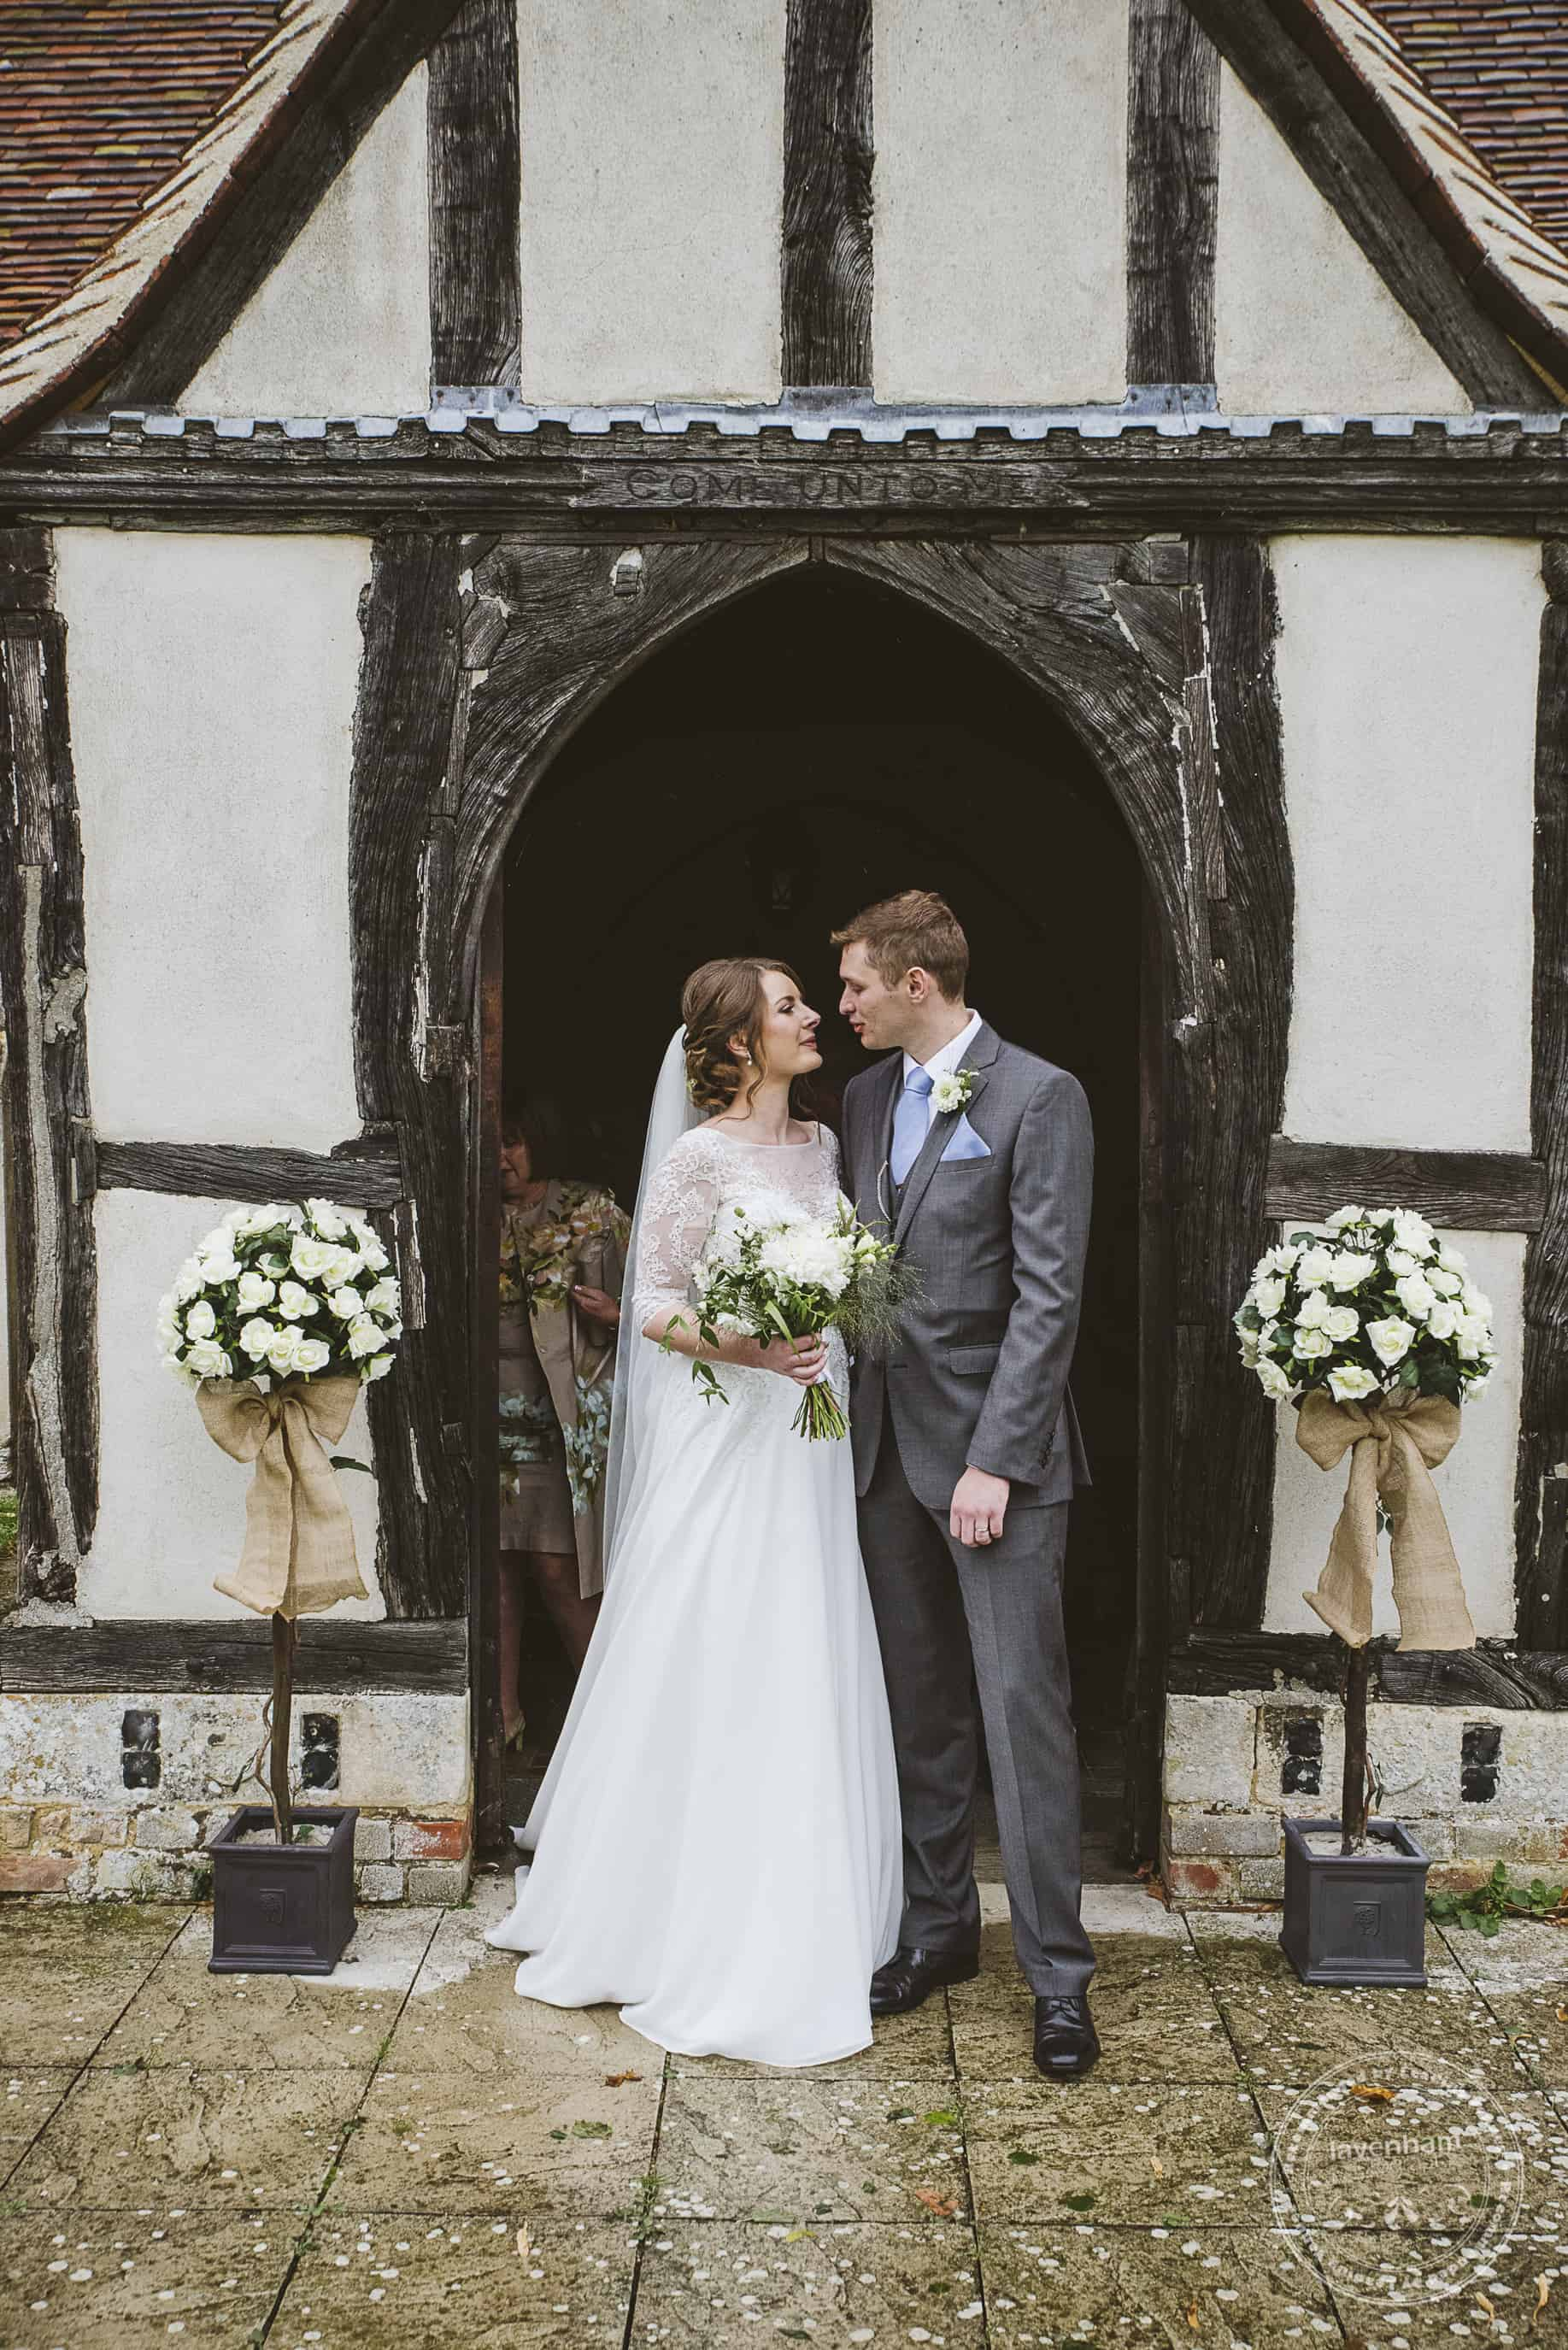 220918 Alpheton Barn Wedding Photography by Lavenham Photographic 064